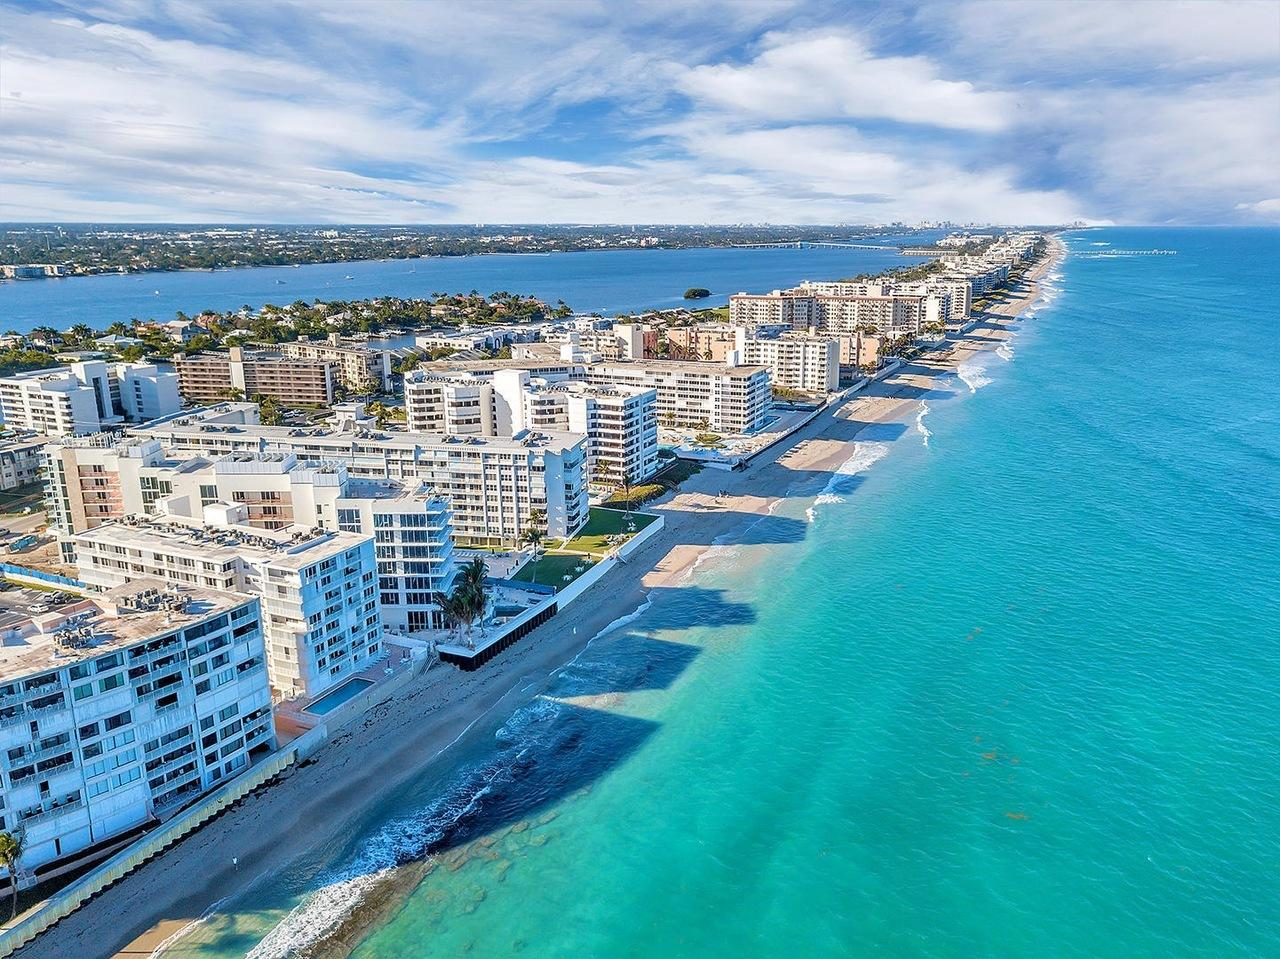 Beautifully renovated, turnkey 1st floor condo in South Palm Beach.  On the intracoastal across the street from the beach.  Near restaurants and shopping in Manalapan and Lantana. Move-in ready, just bring your flip-flops!